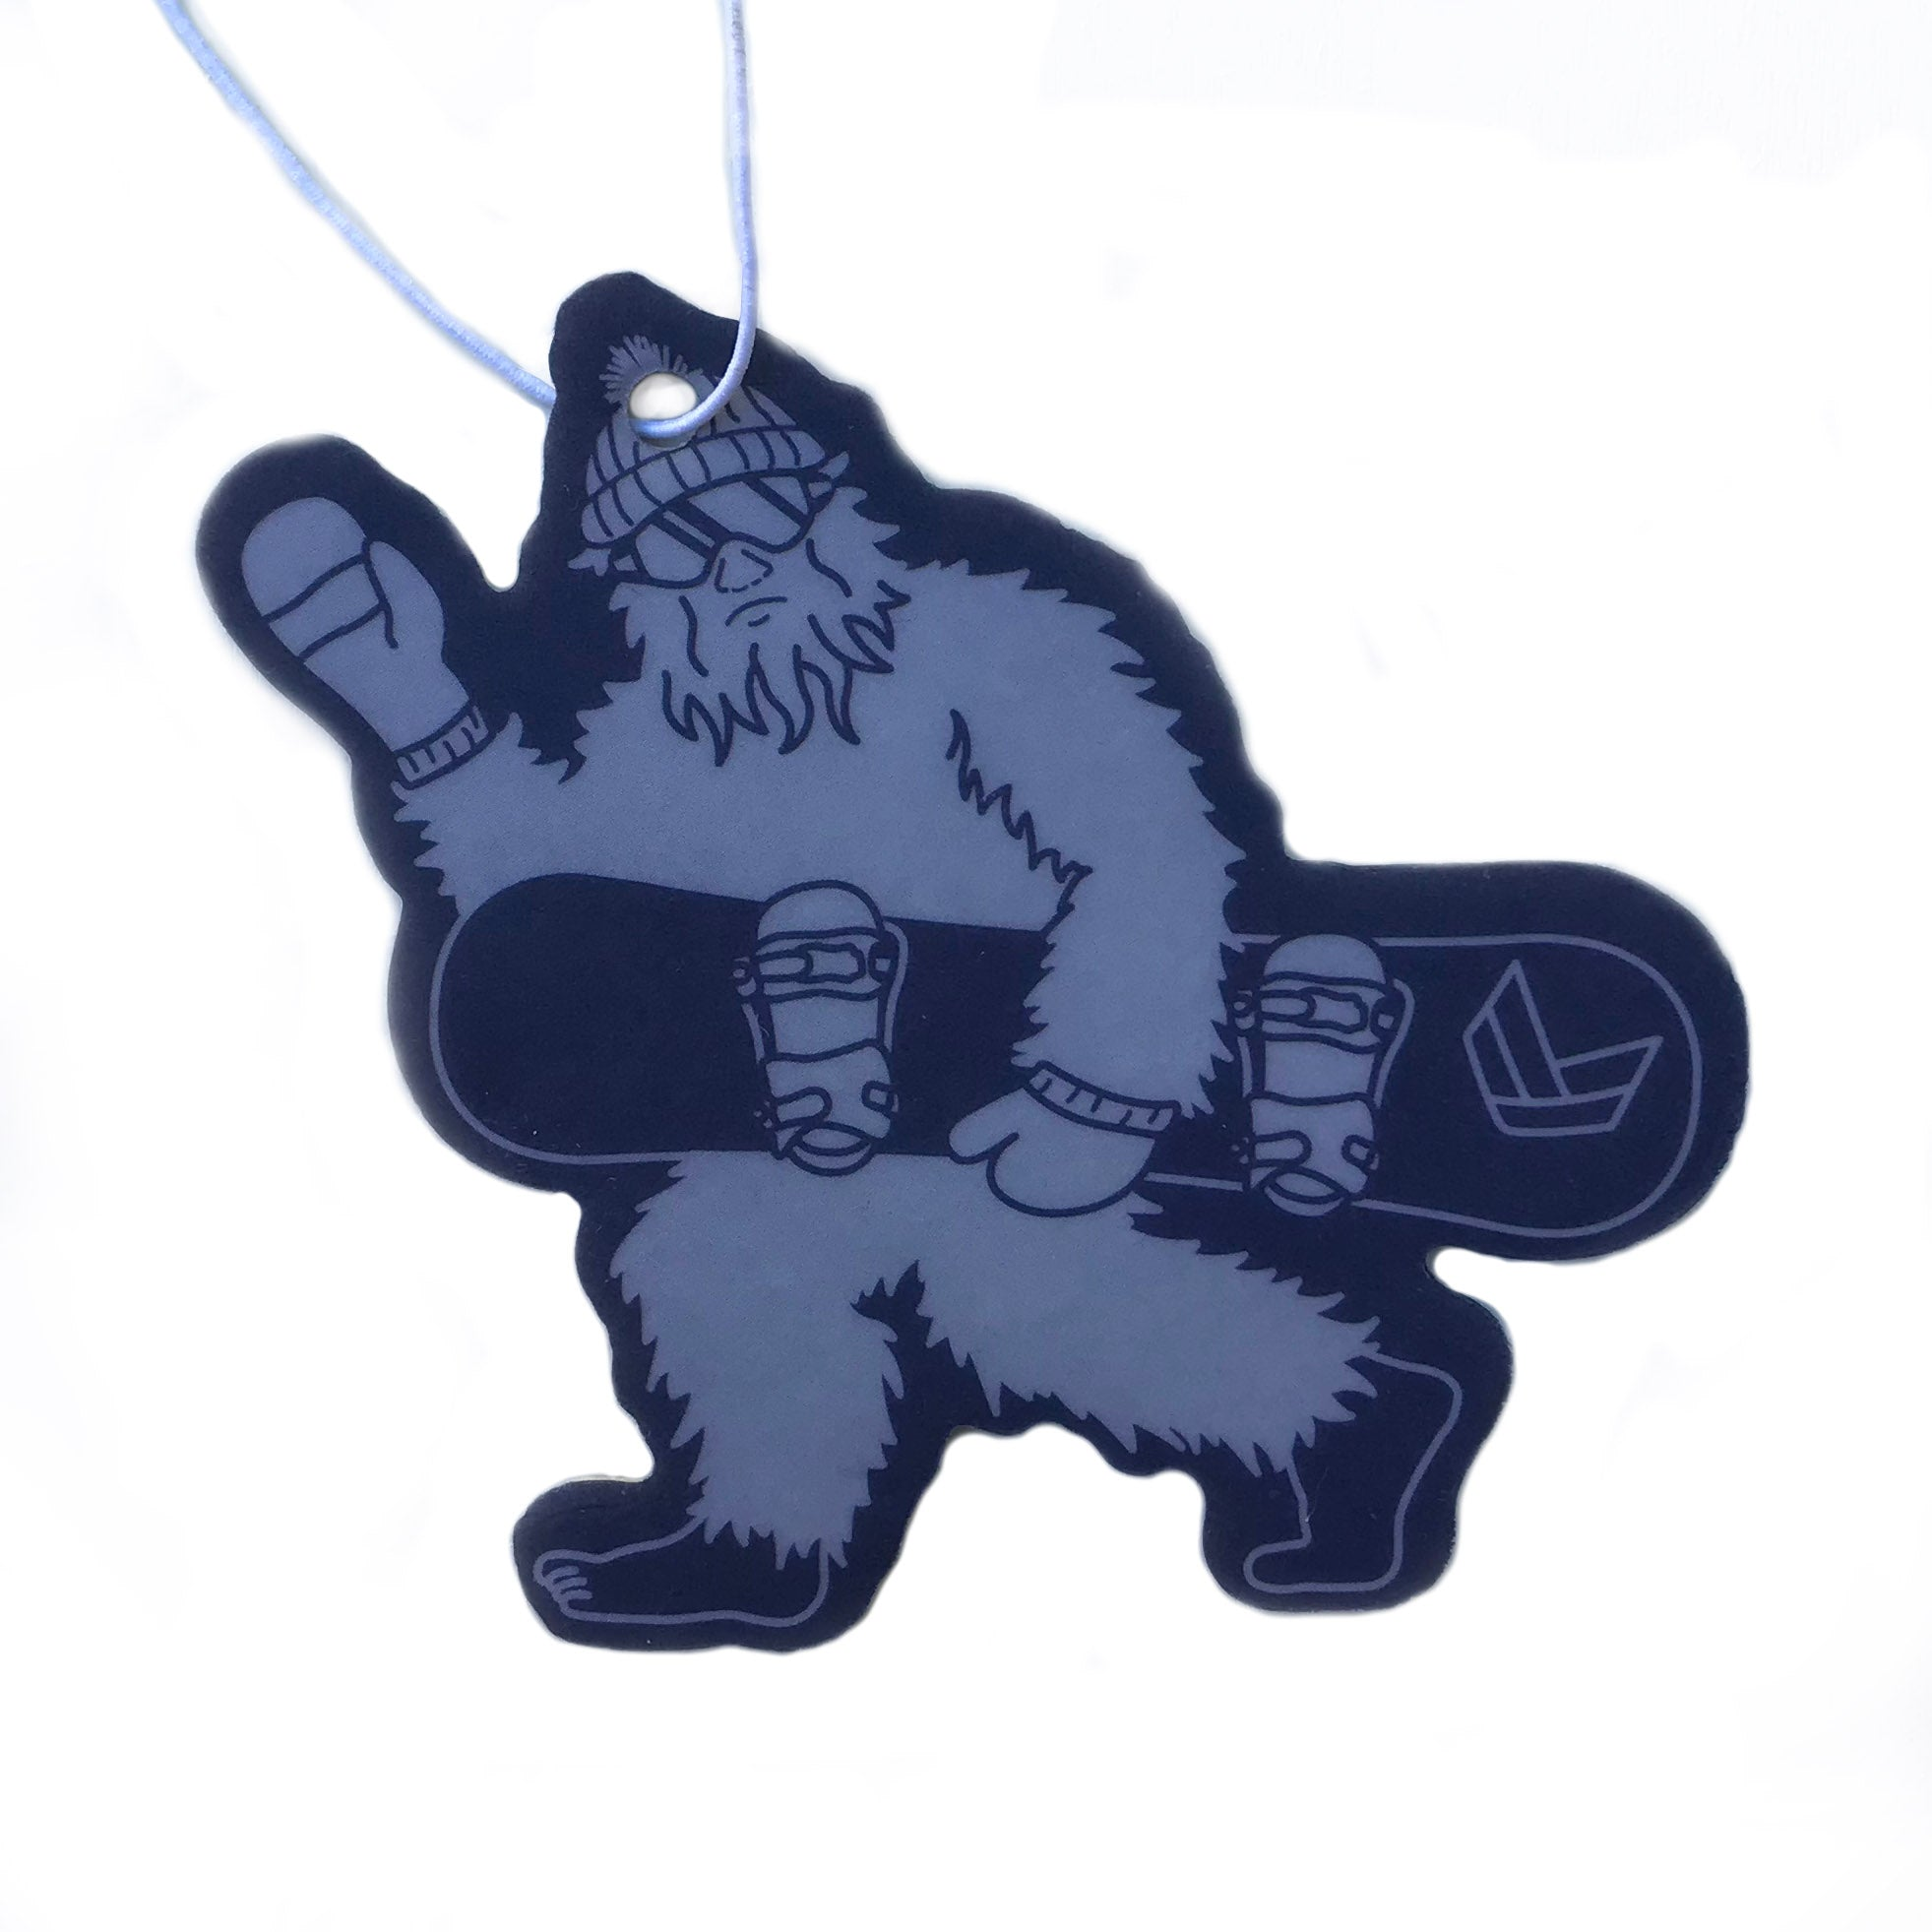 SQUATCH AIR FRESHENER DUO